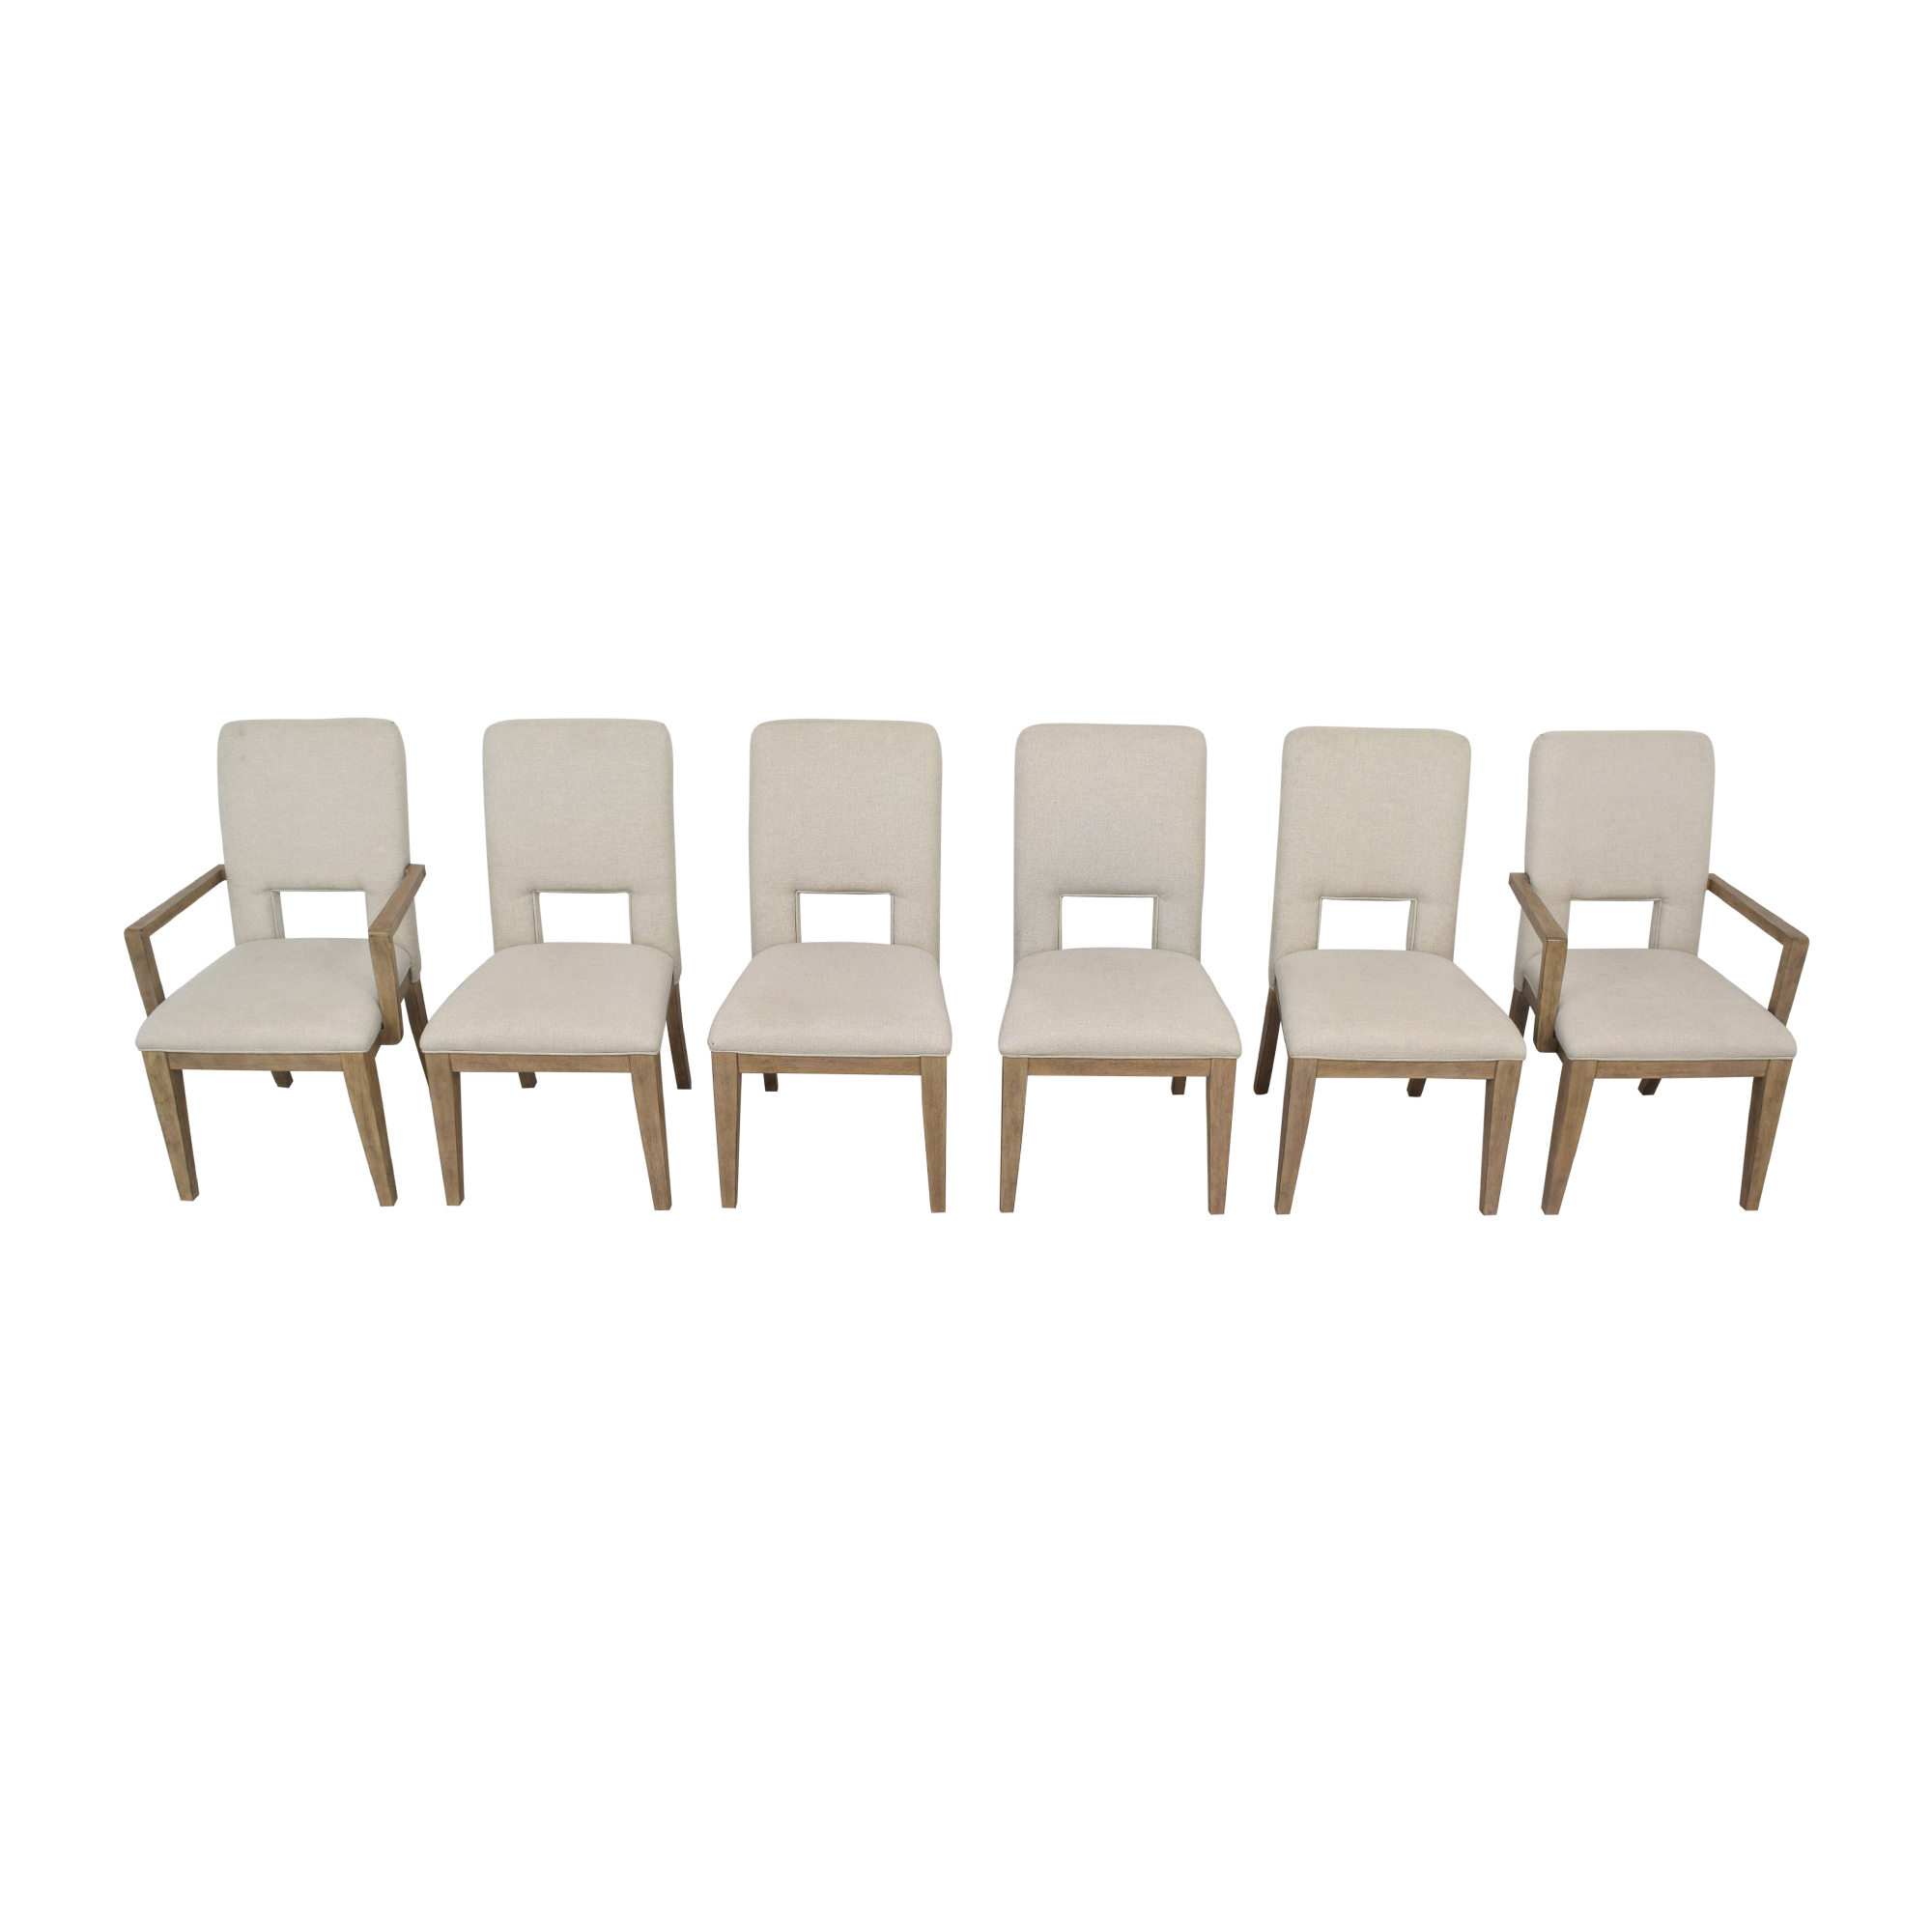 Macy's Macy's Altair Dining Chairs discount